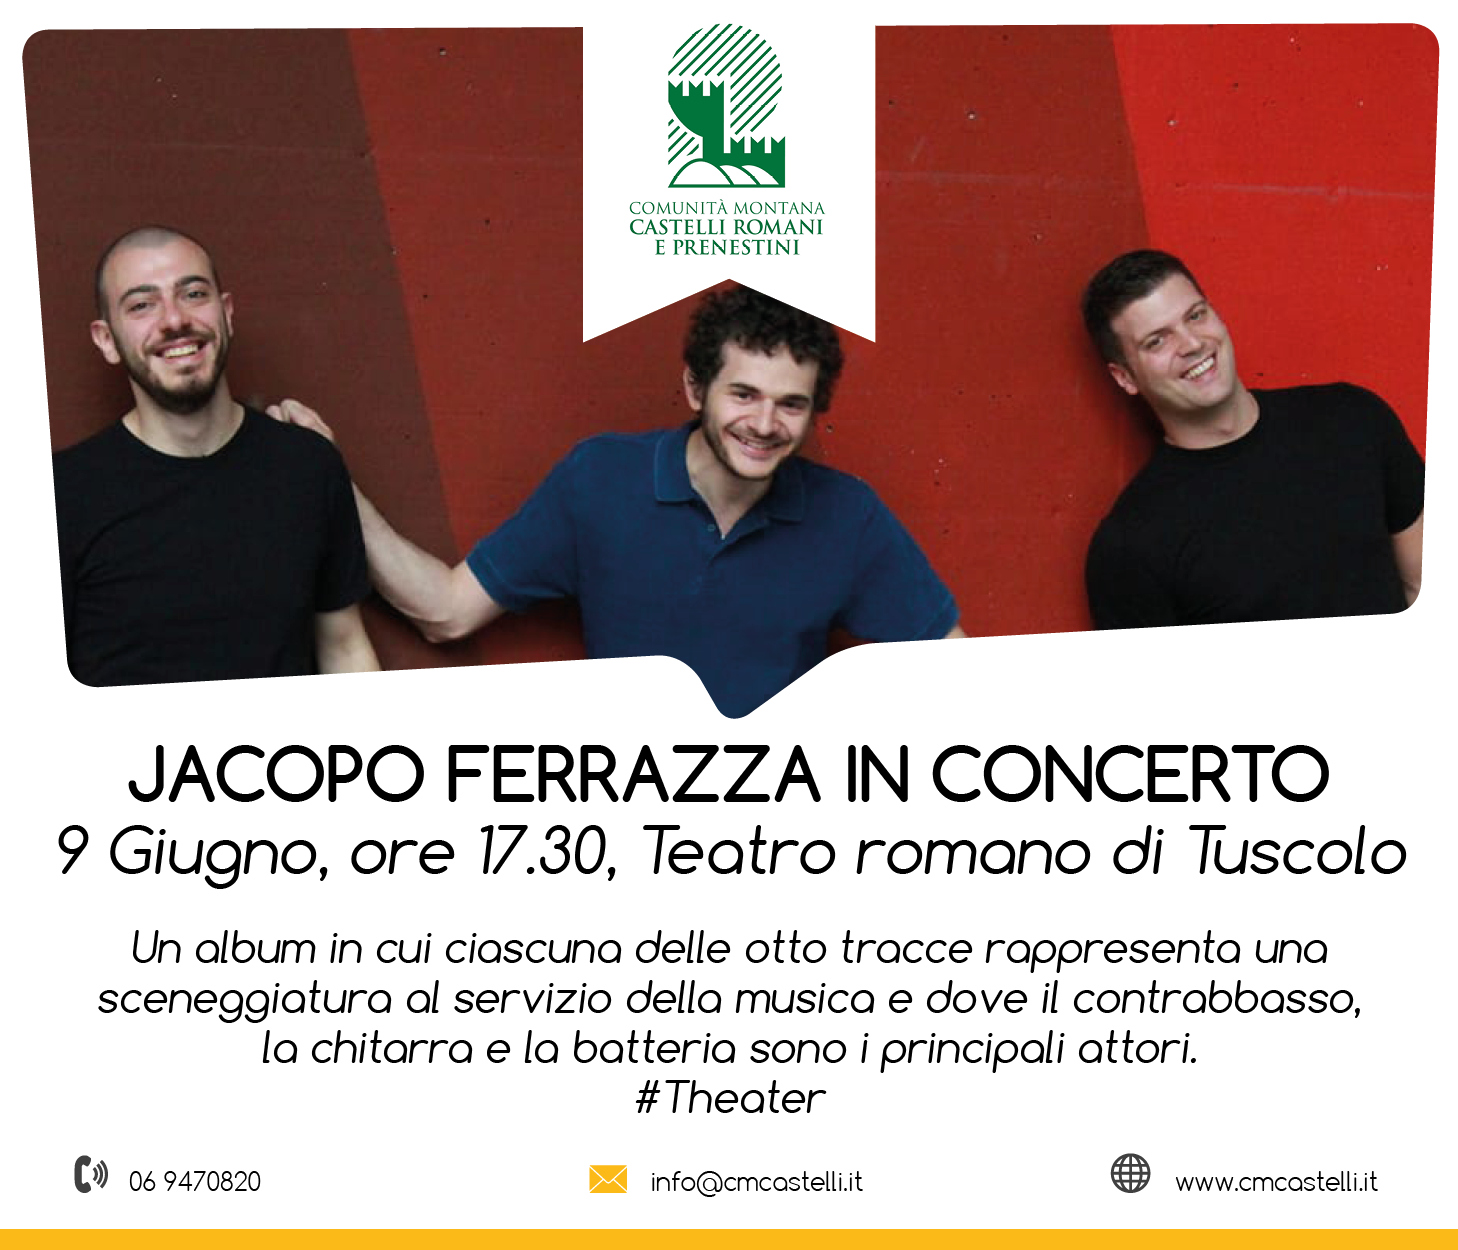 Jacopo Ferrazza in concerto